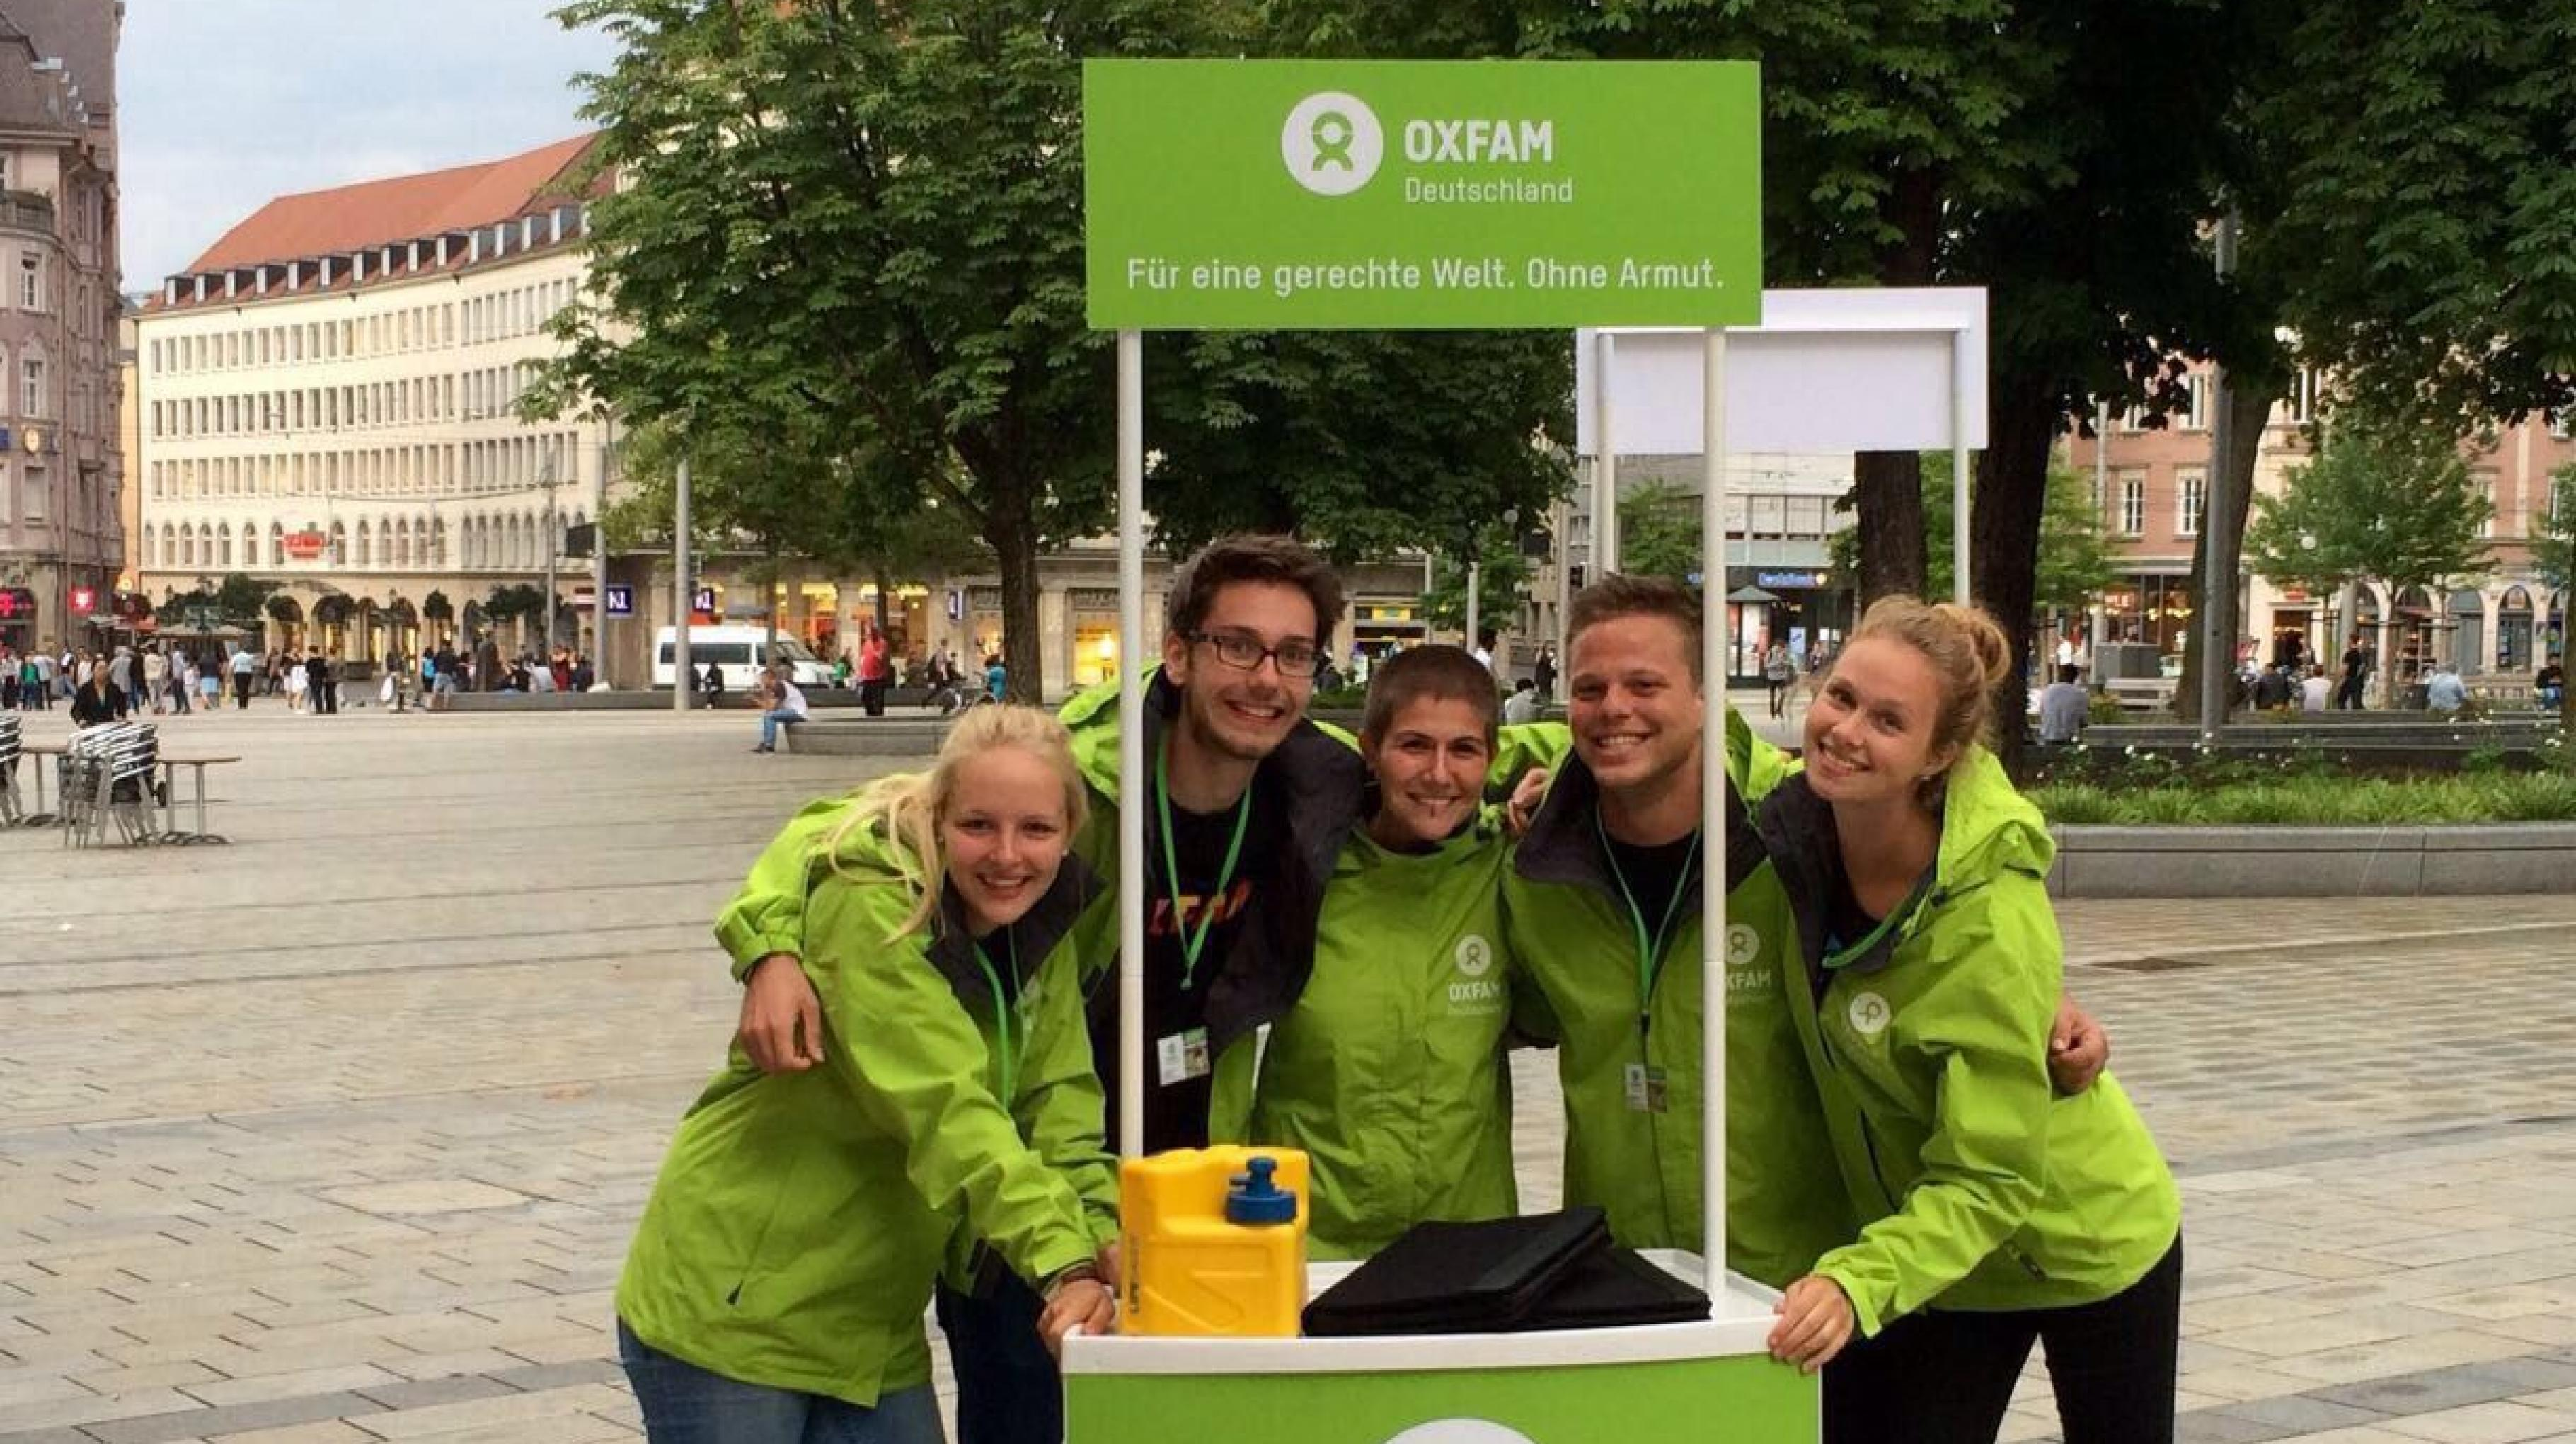 Das Oxfam on the Road-Team am Infostand